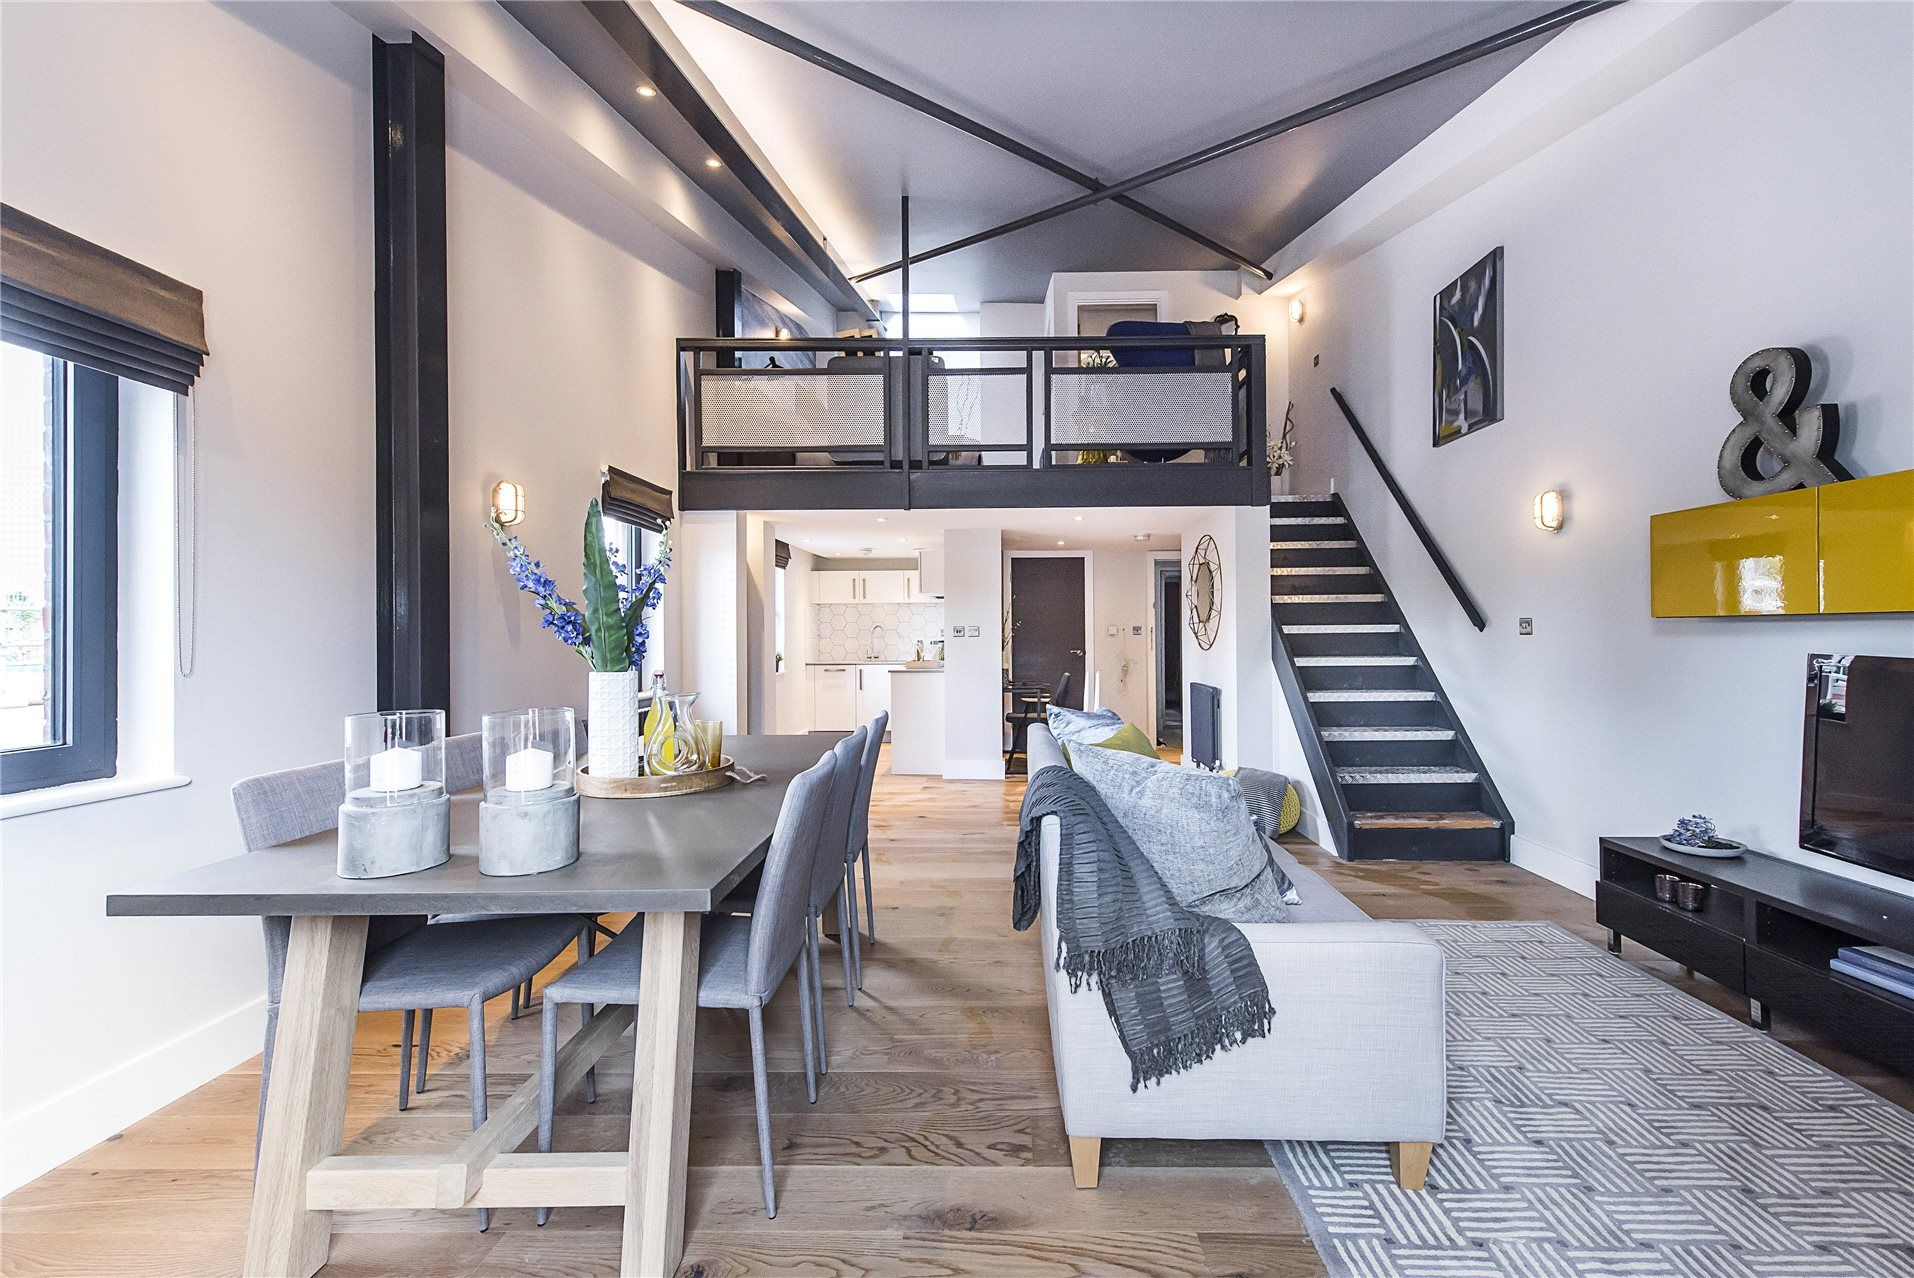 22 Bedroom Apartment In London References The Apartment Is On A Standard London Building And It Is Ideal That You Experie Home London Apartment 1 Bedroom Flat